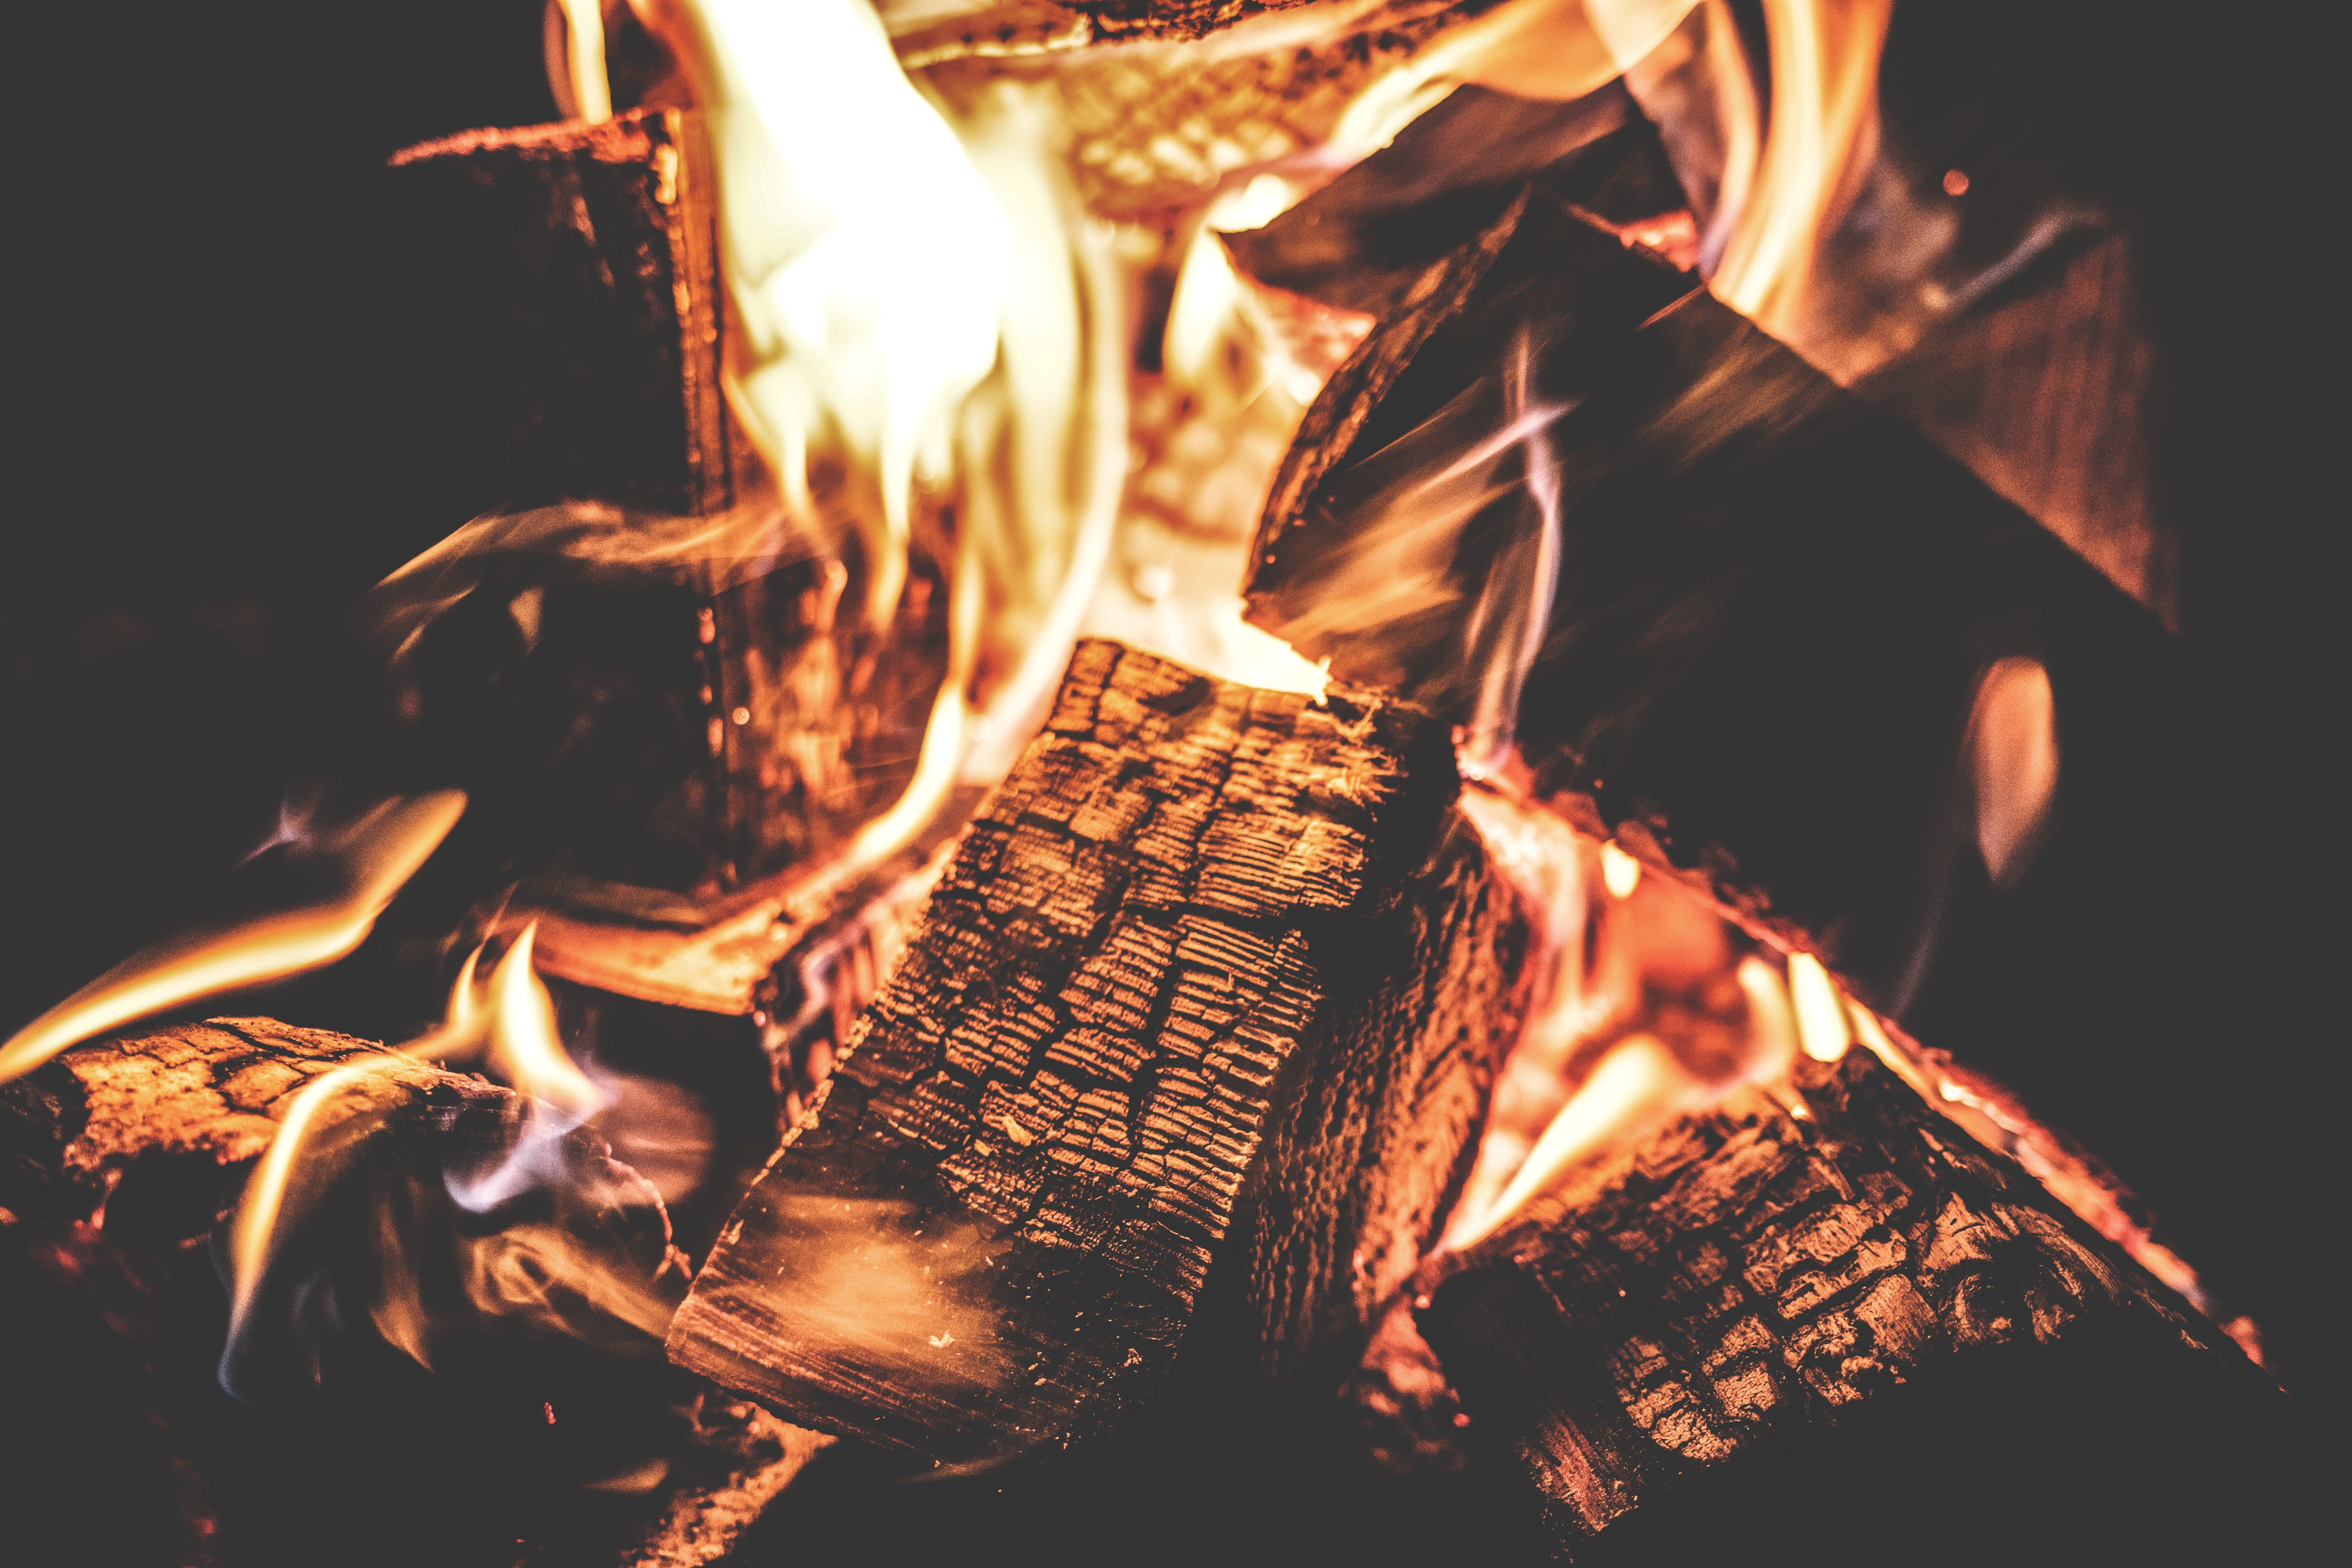 Focus Photography of a Ignited Firewood, Heat, Flame, Firewood, Hot, HQ Photo